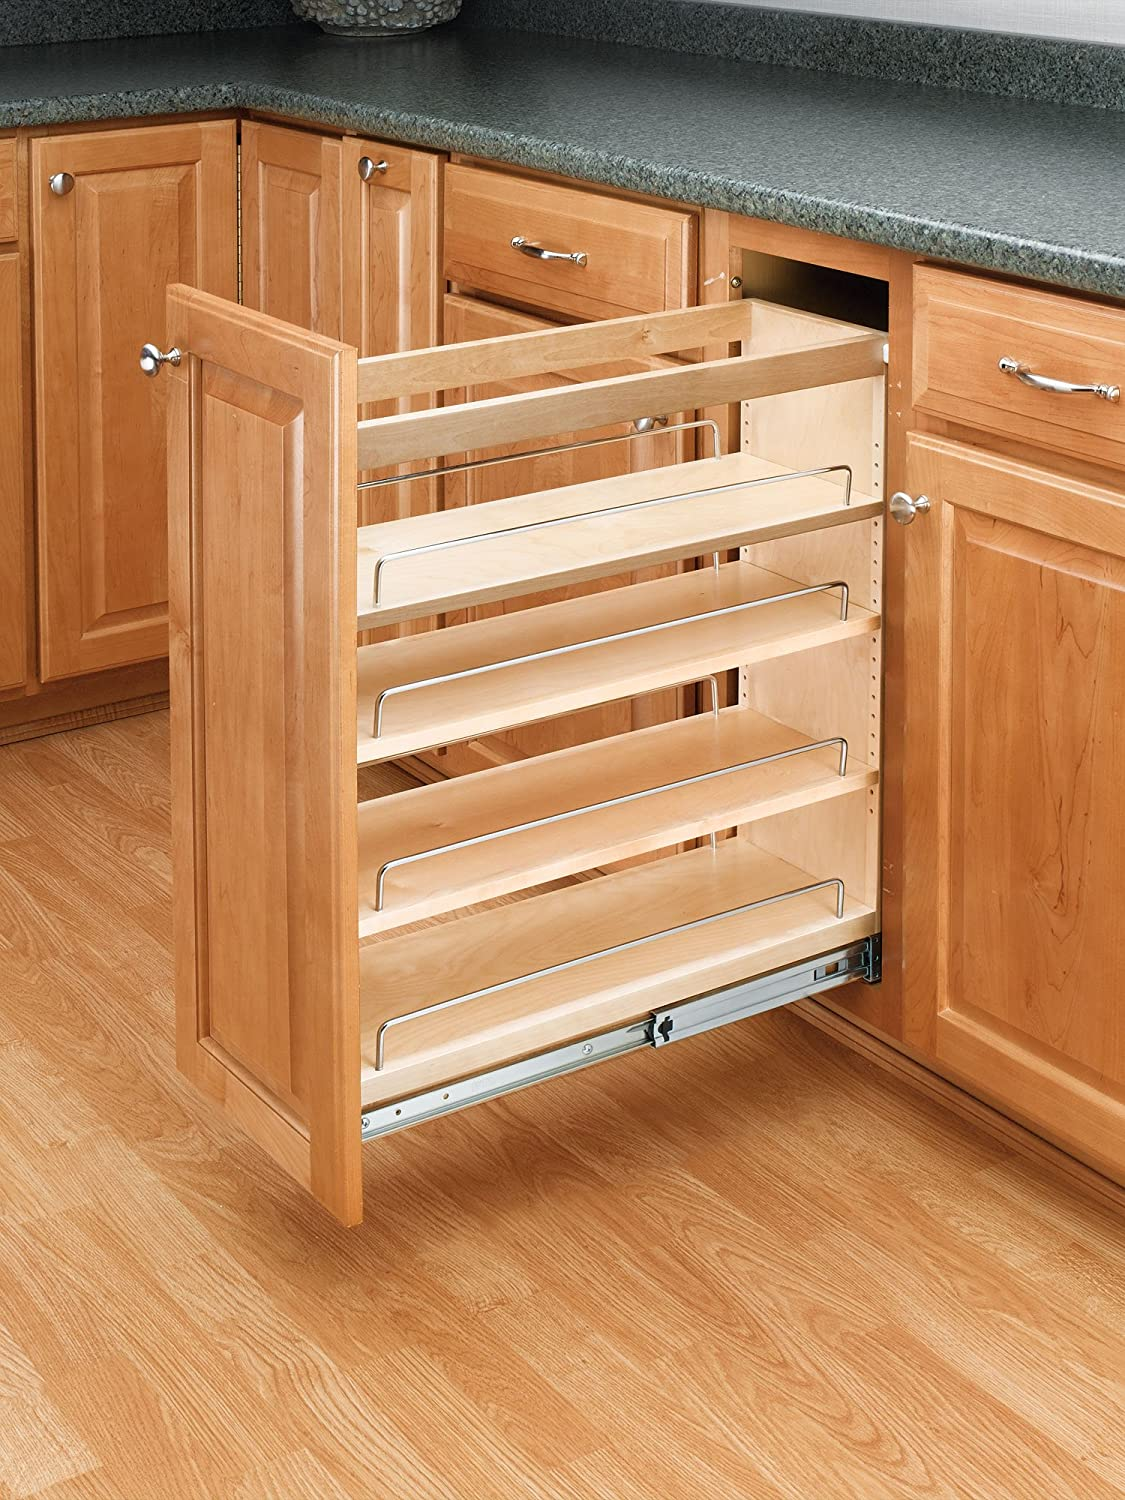 Rev-A-Shelf 448-BC-8C Base Cabinet Pullout Organizer with Wood Adjustable Shelves Sink & Base Accessories, 8-Inch